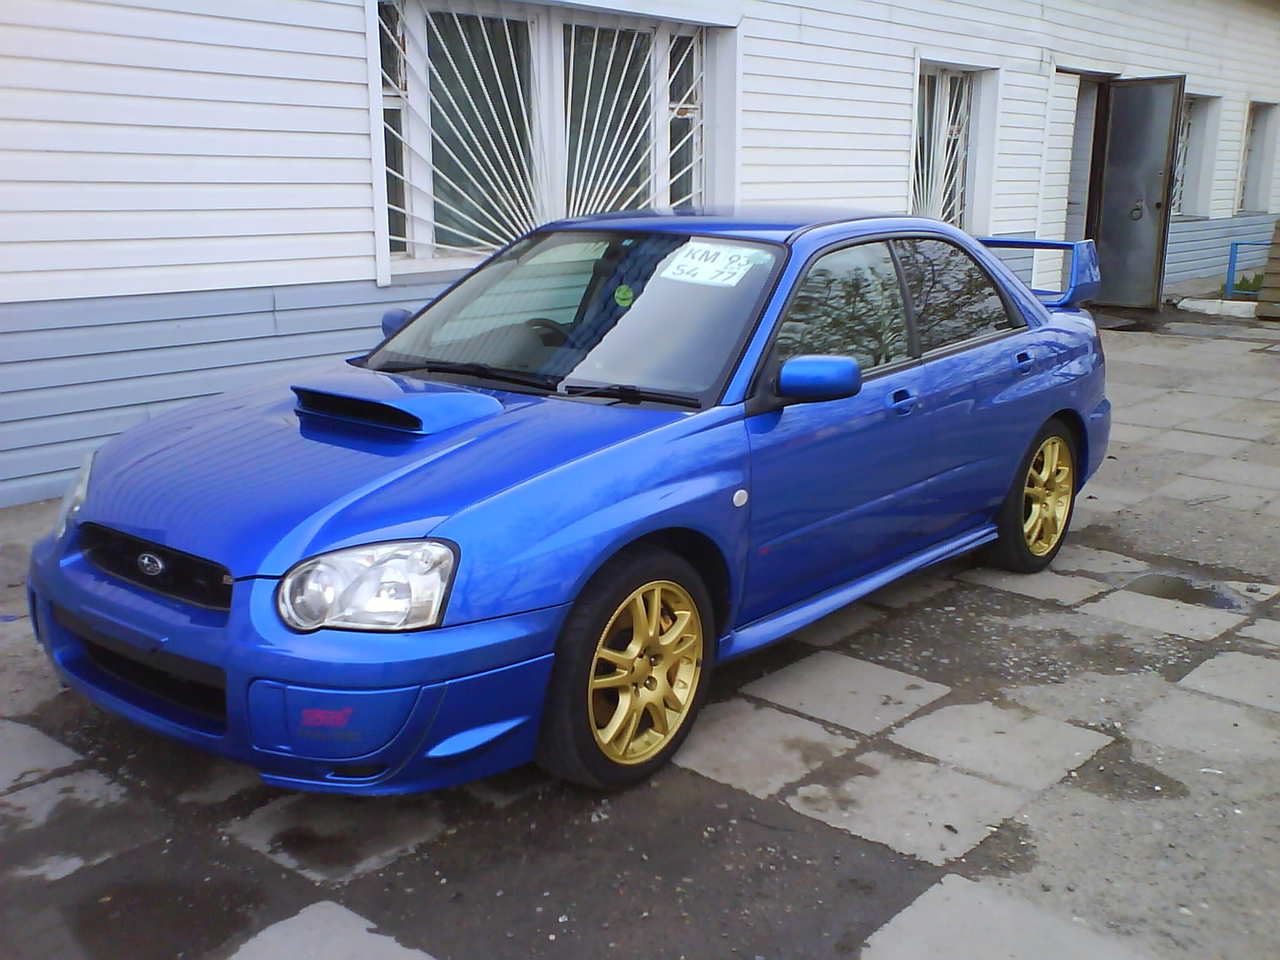 used 2003 subaru impreza wrx sti photos 2000cc gasoline manual for sale. Black Bedroom Furniture Sets. Home Design Ideas